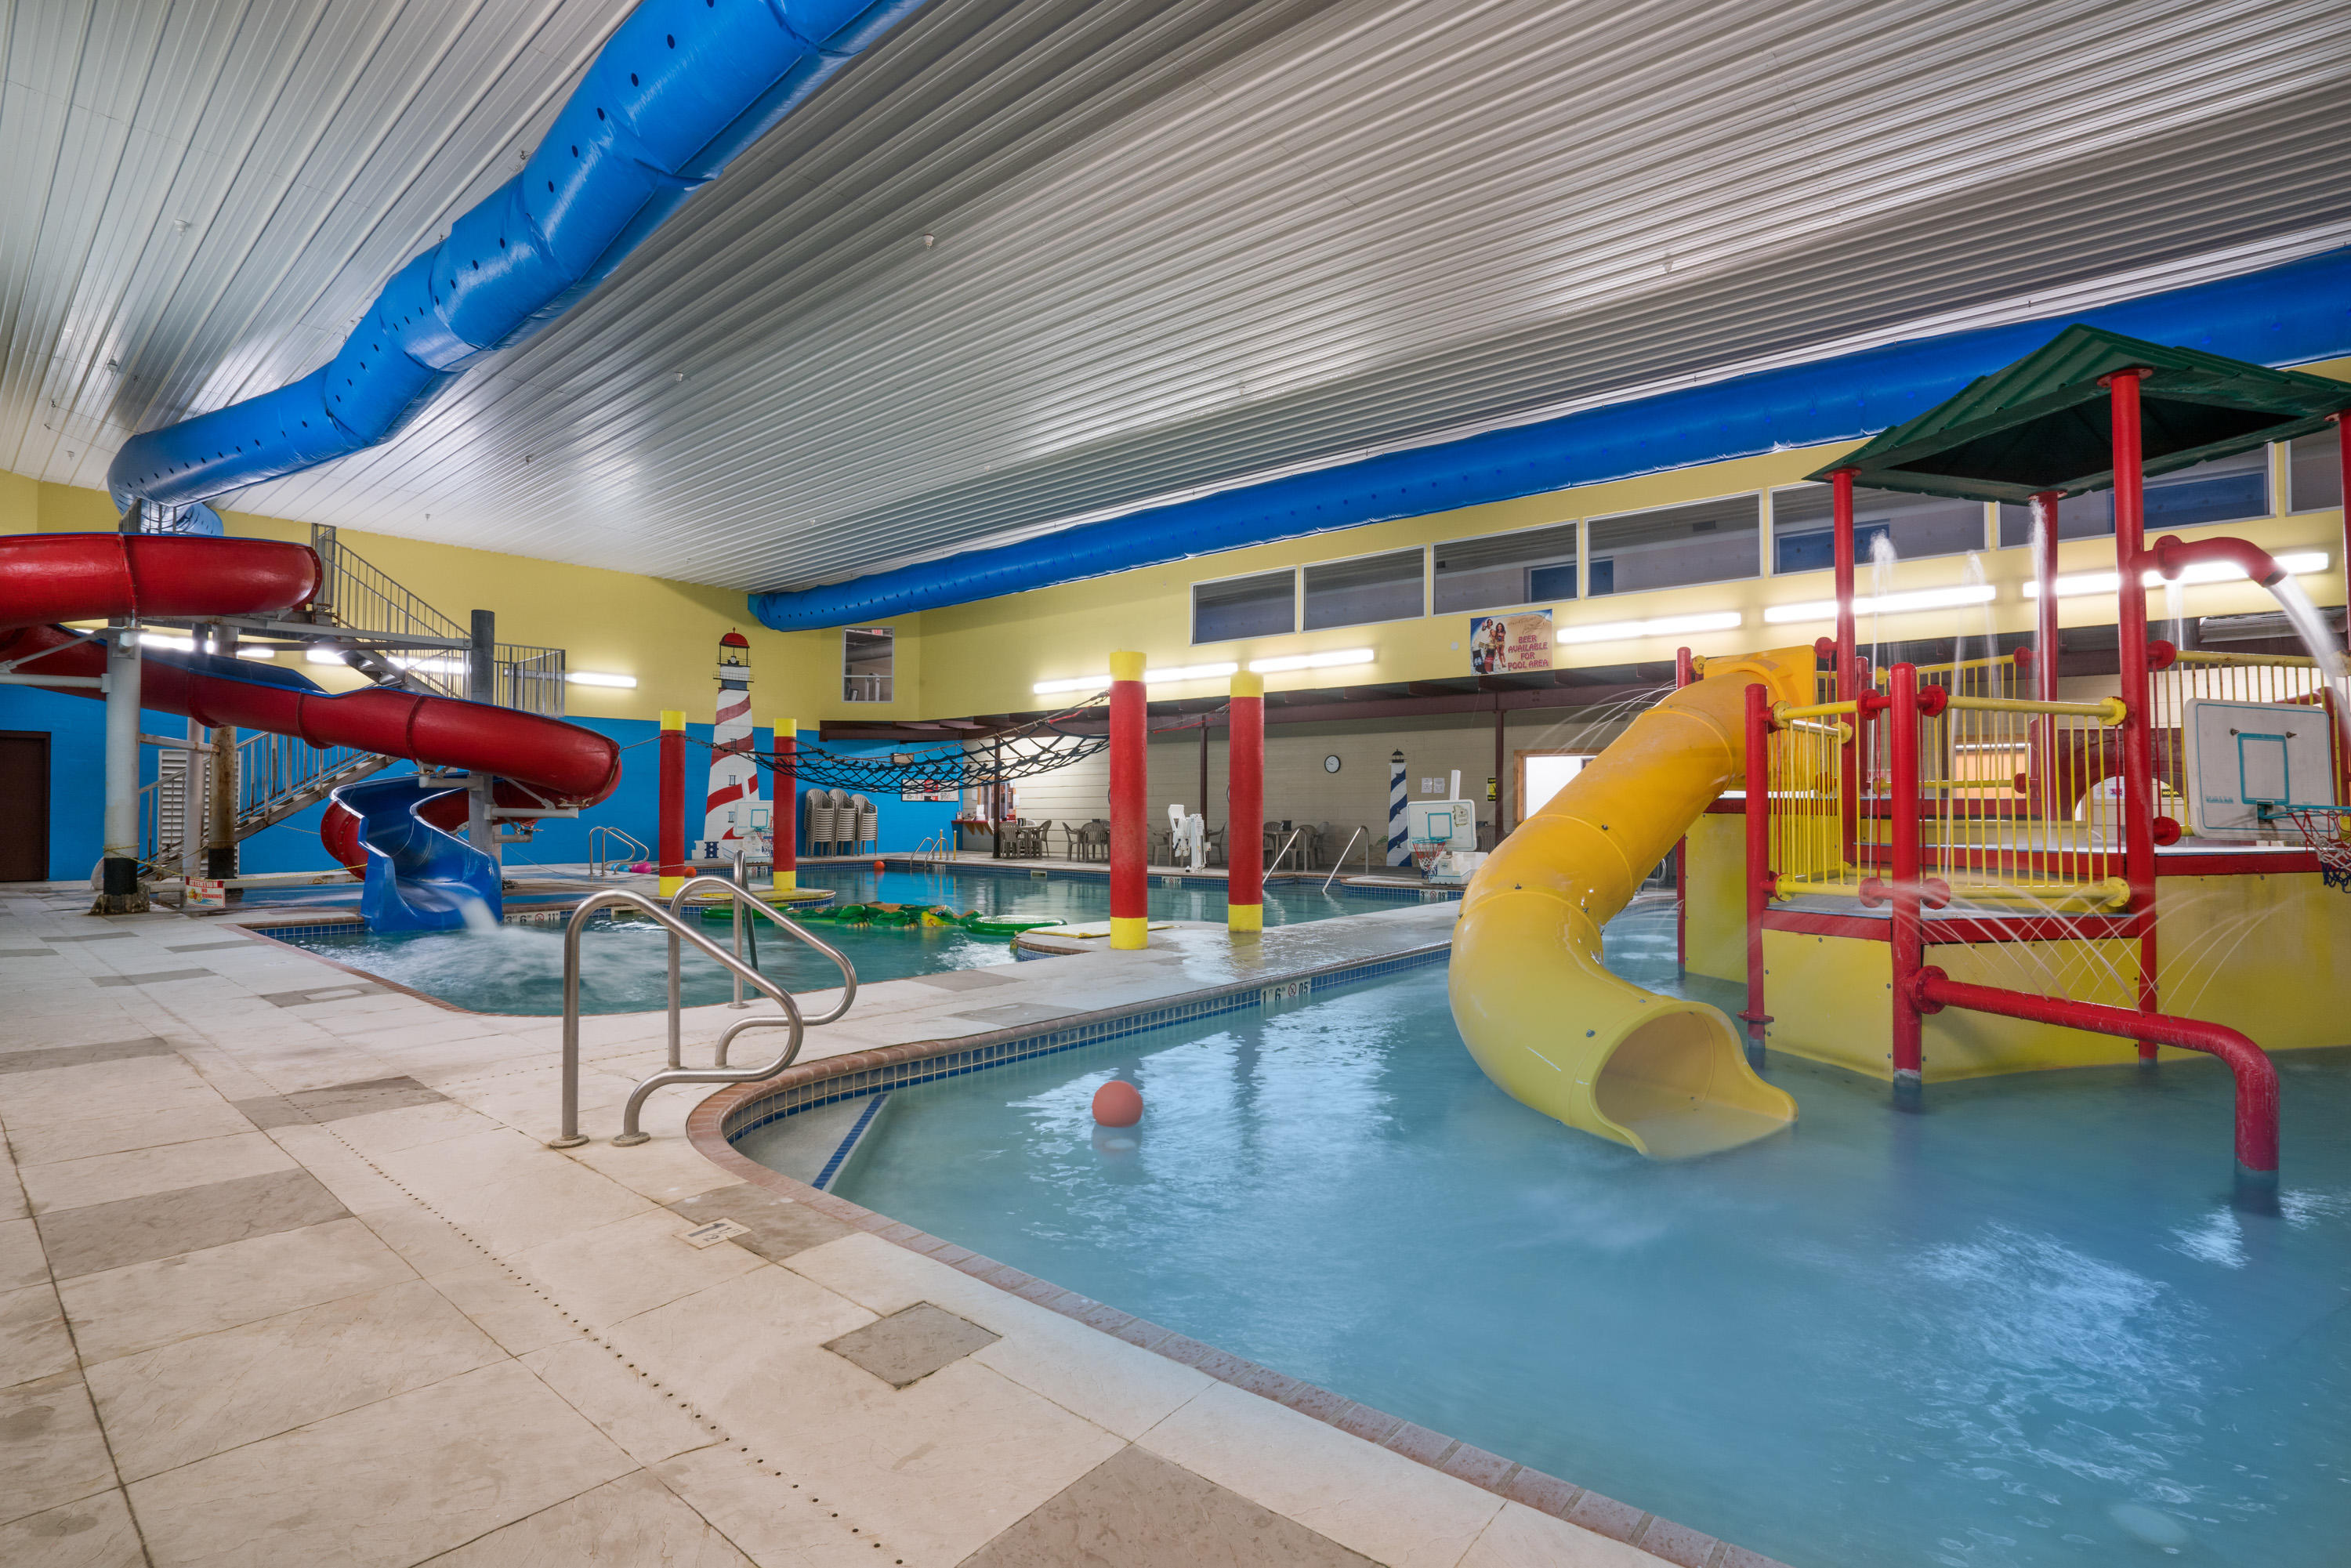 Days Inn Hotel & Governors' Waterpark, RV Park & Fitness Center image 1